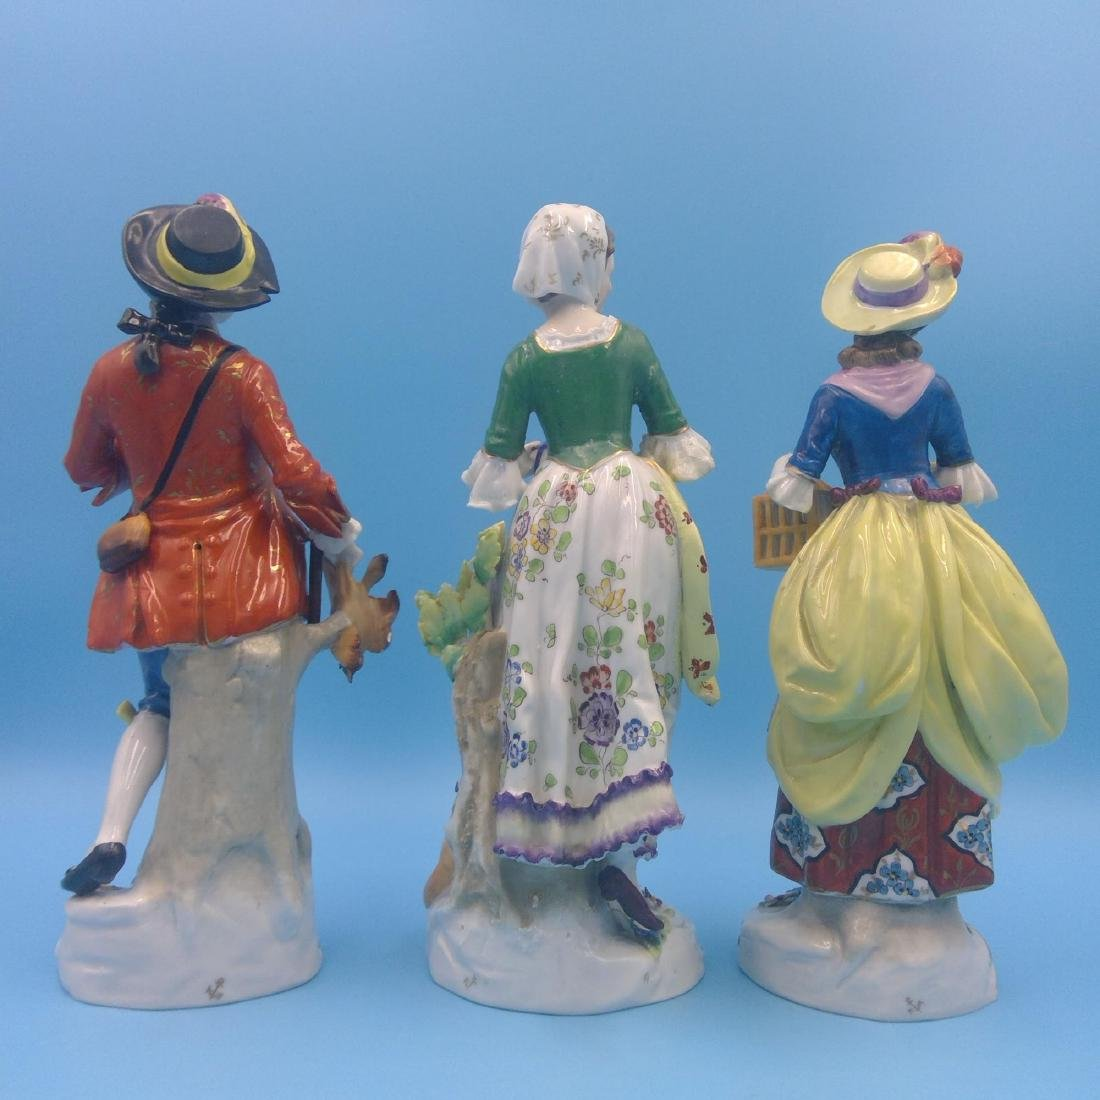 GROUP OF 3 CHELSEA 18thC ENGLISH PORCELAIN FIGURES - 3